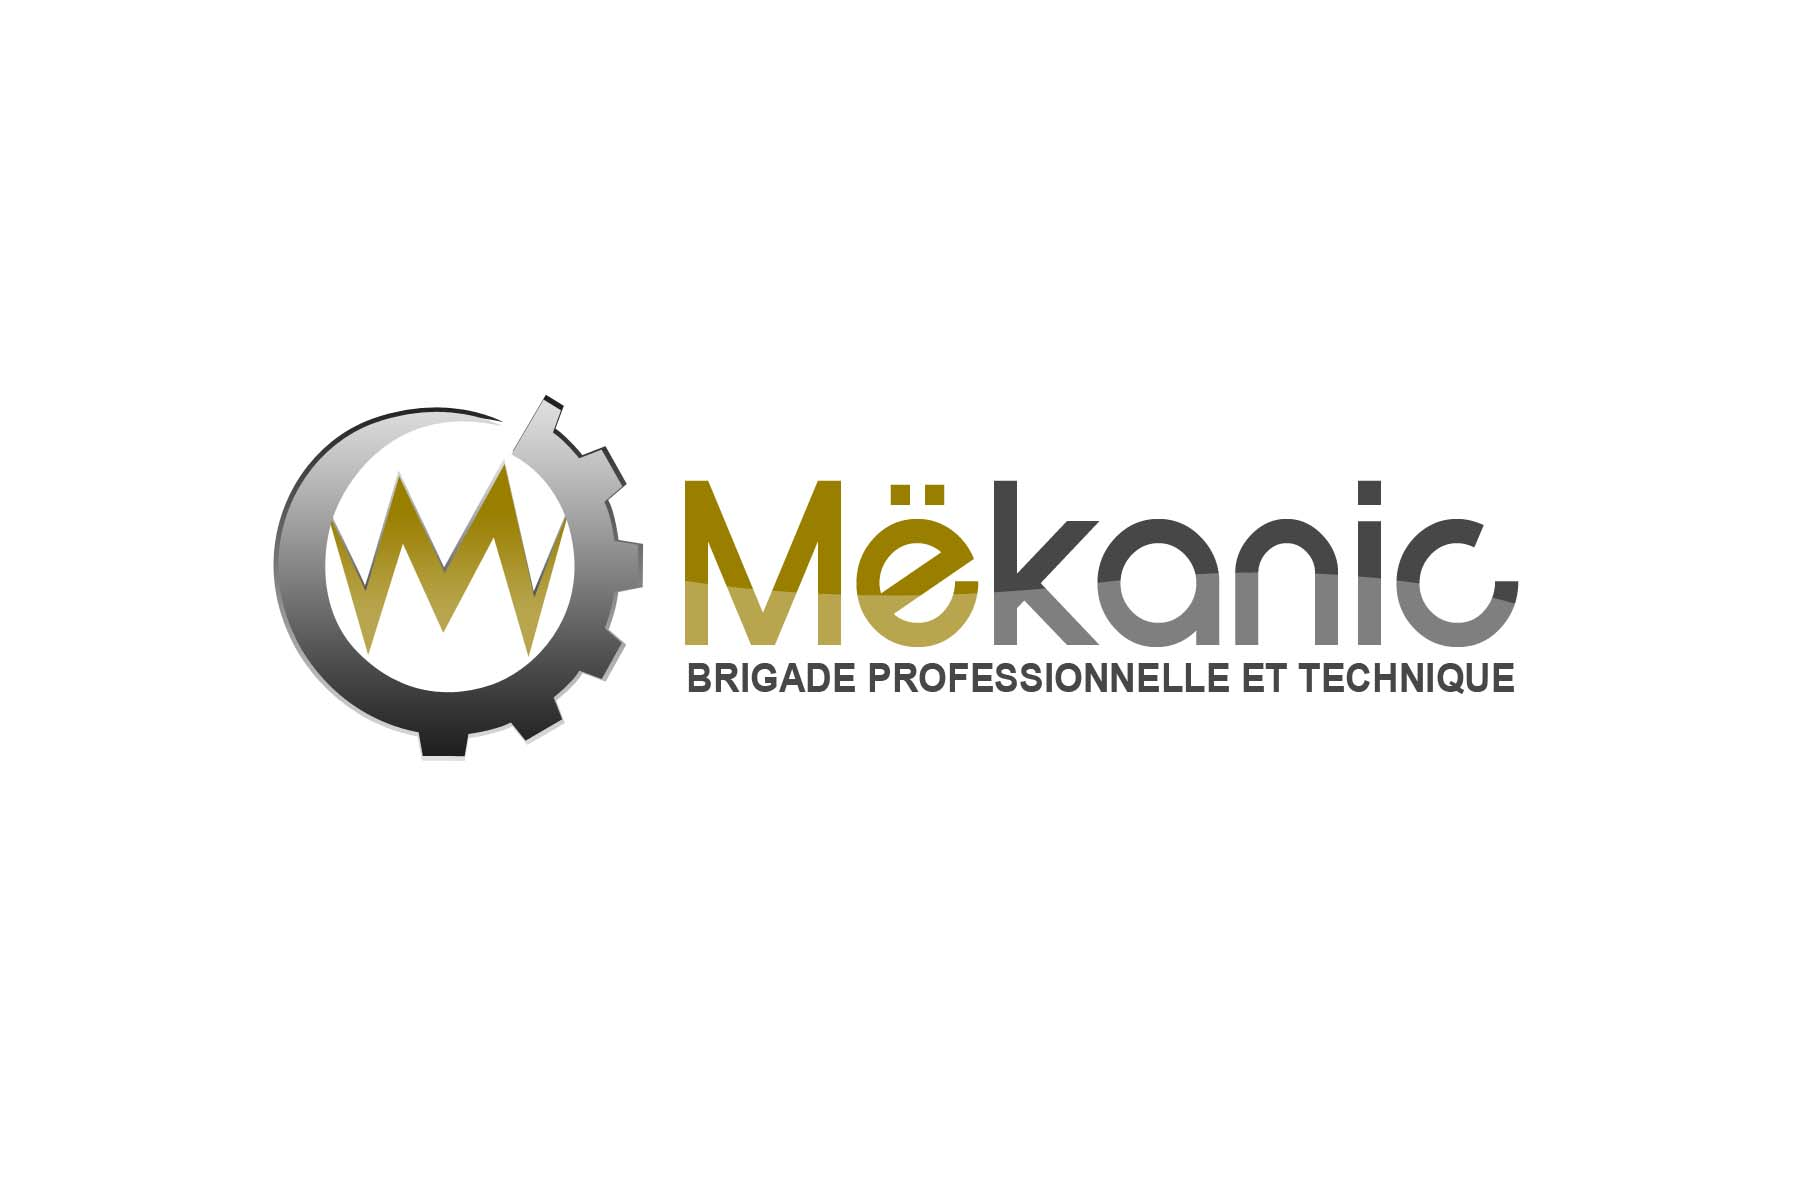 Logo Design by Private User - Entry No. 349 in the Logo Design Contest Creative Logo Design for MËKANIC - Professional and technical squad.